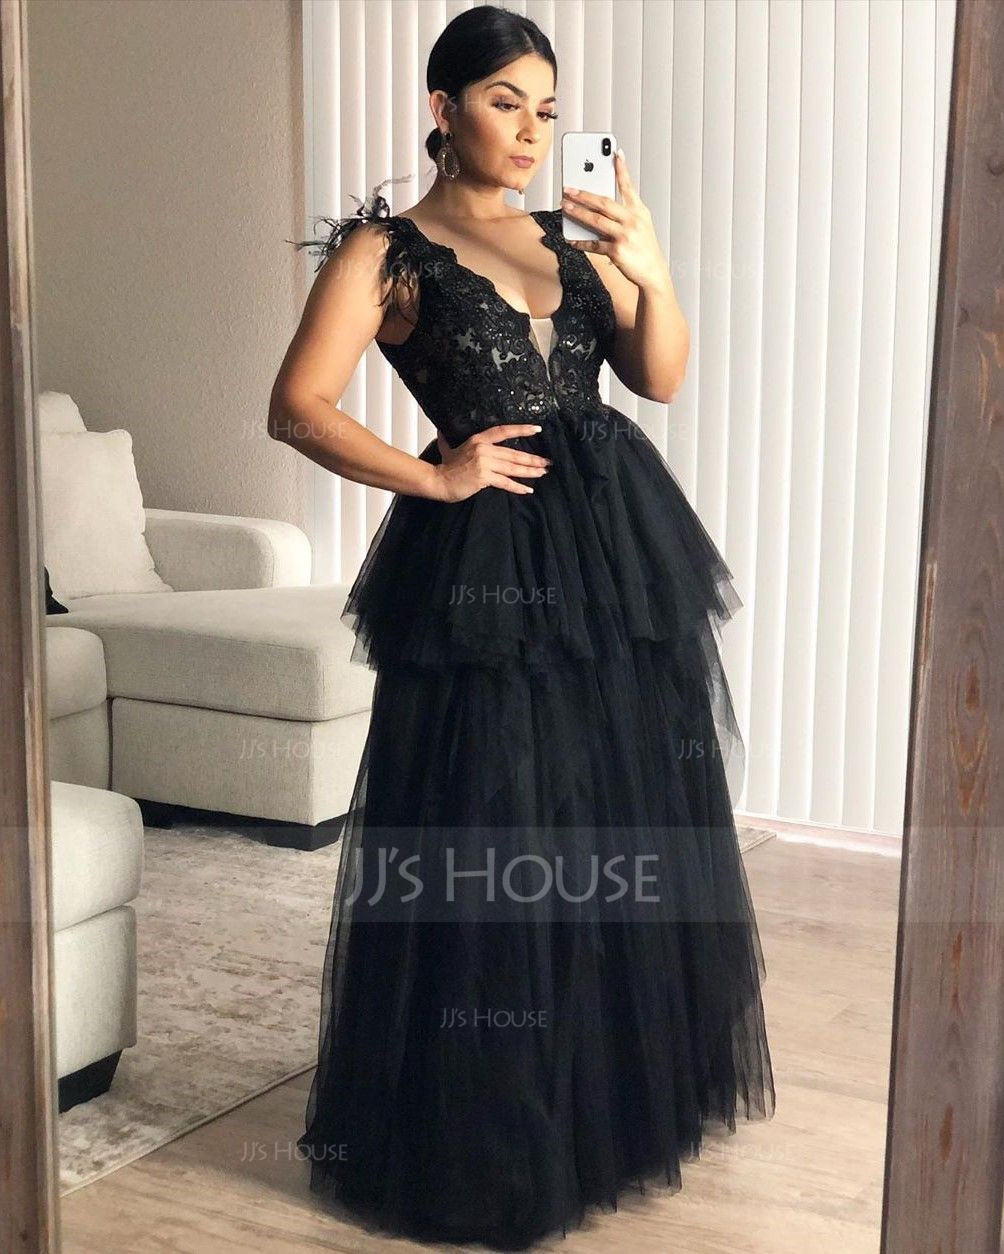 This look from JJ's House Style Gallery! See more looks from their customers at this site!